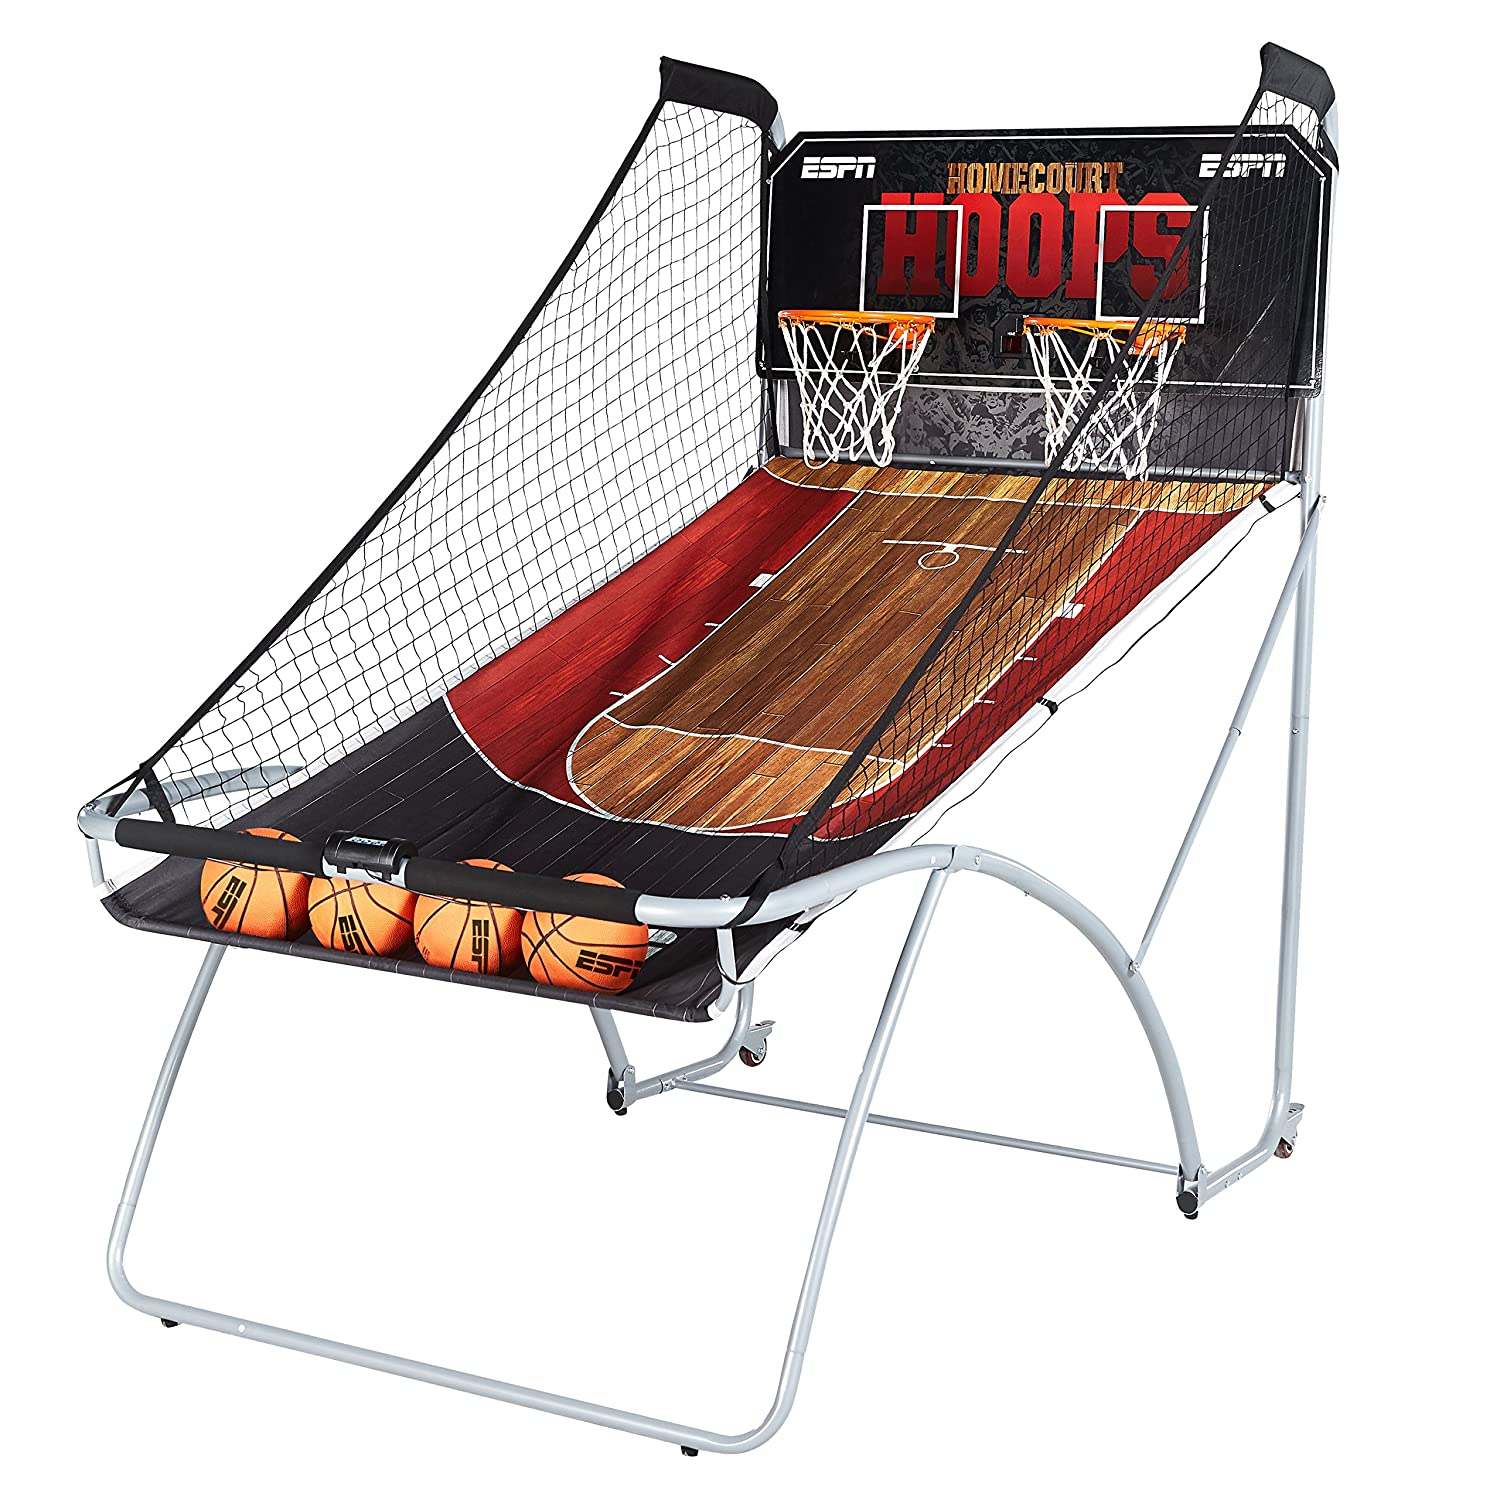 ESPN EZ Fold Indoor Basketball Game for 2 Players with LED Scoring and Arcade Sounds (6-Piece Set) 1658128